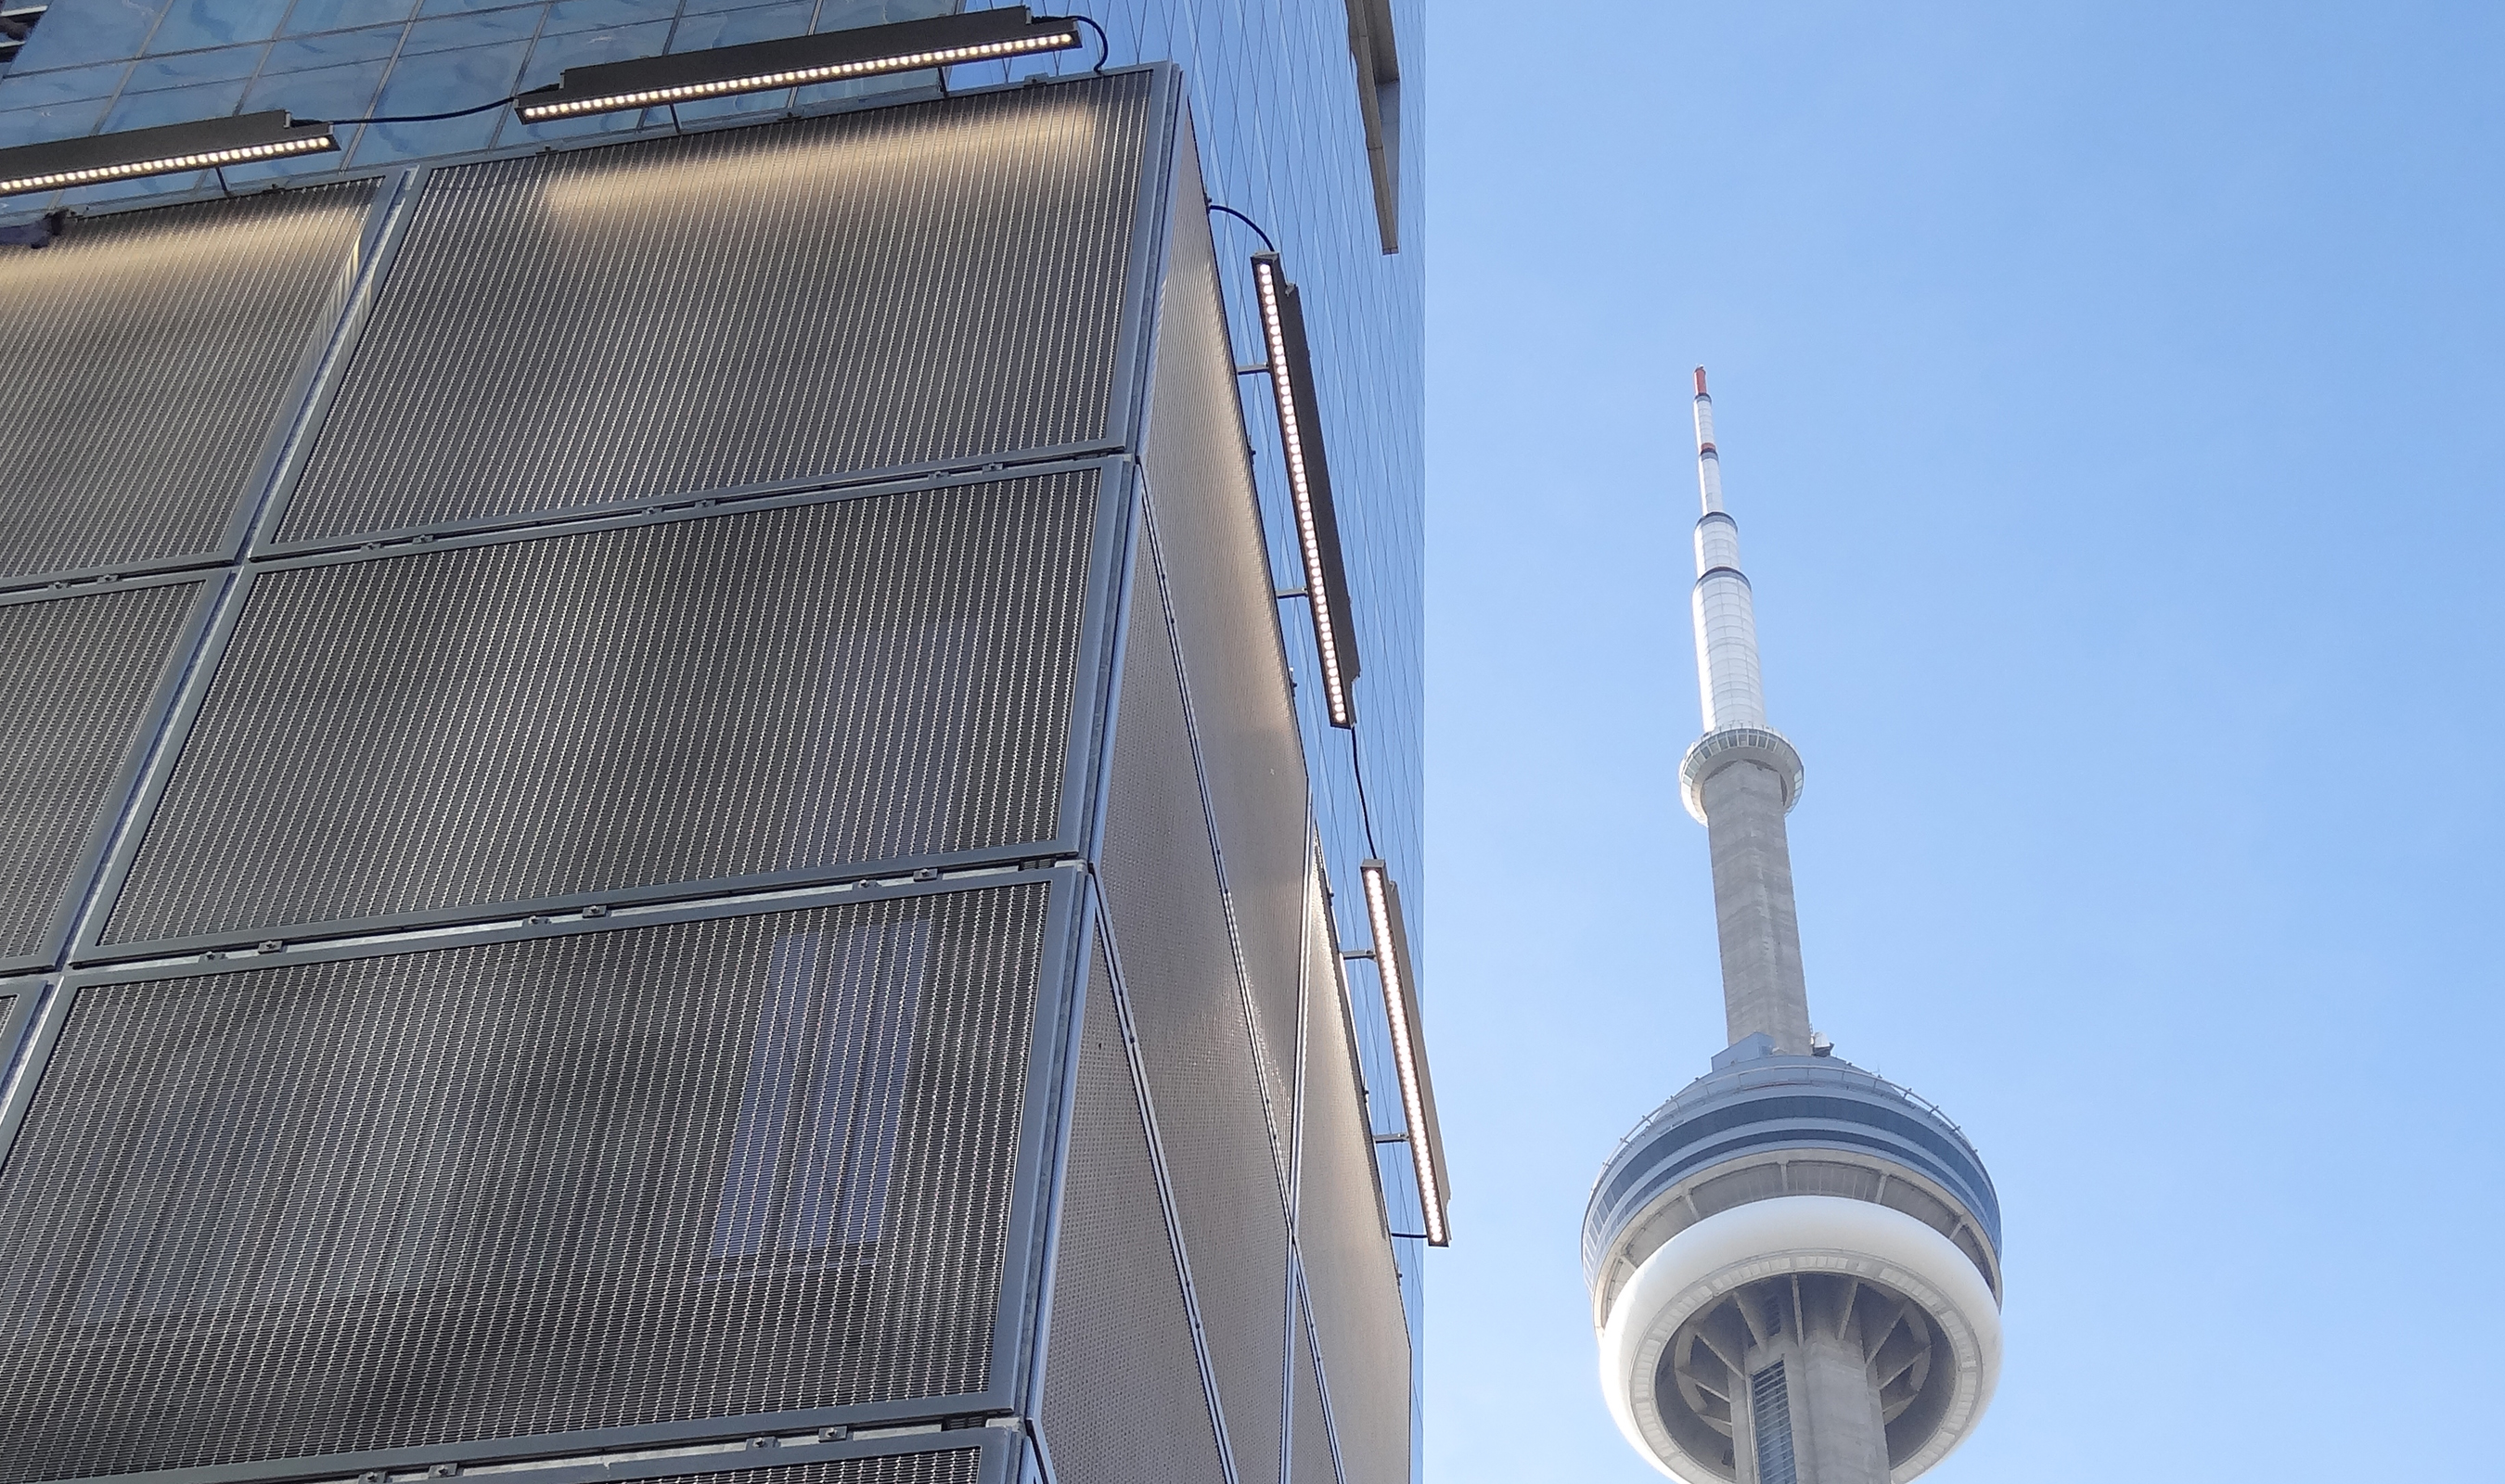 Banker Wire mesh encloses an exterior staircase in a hotel in the heart of Toronto.